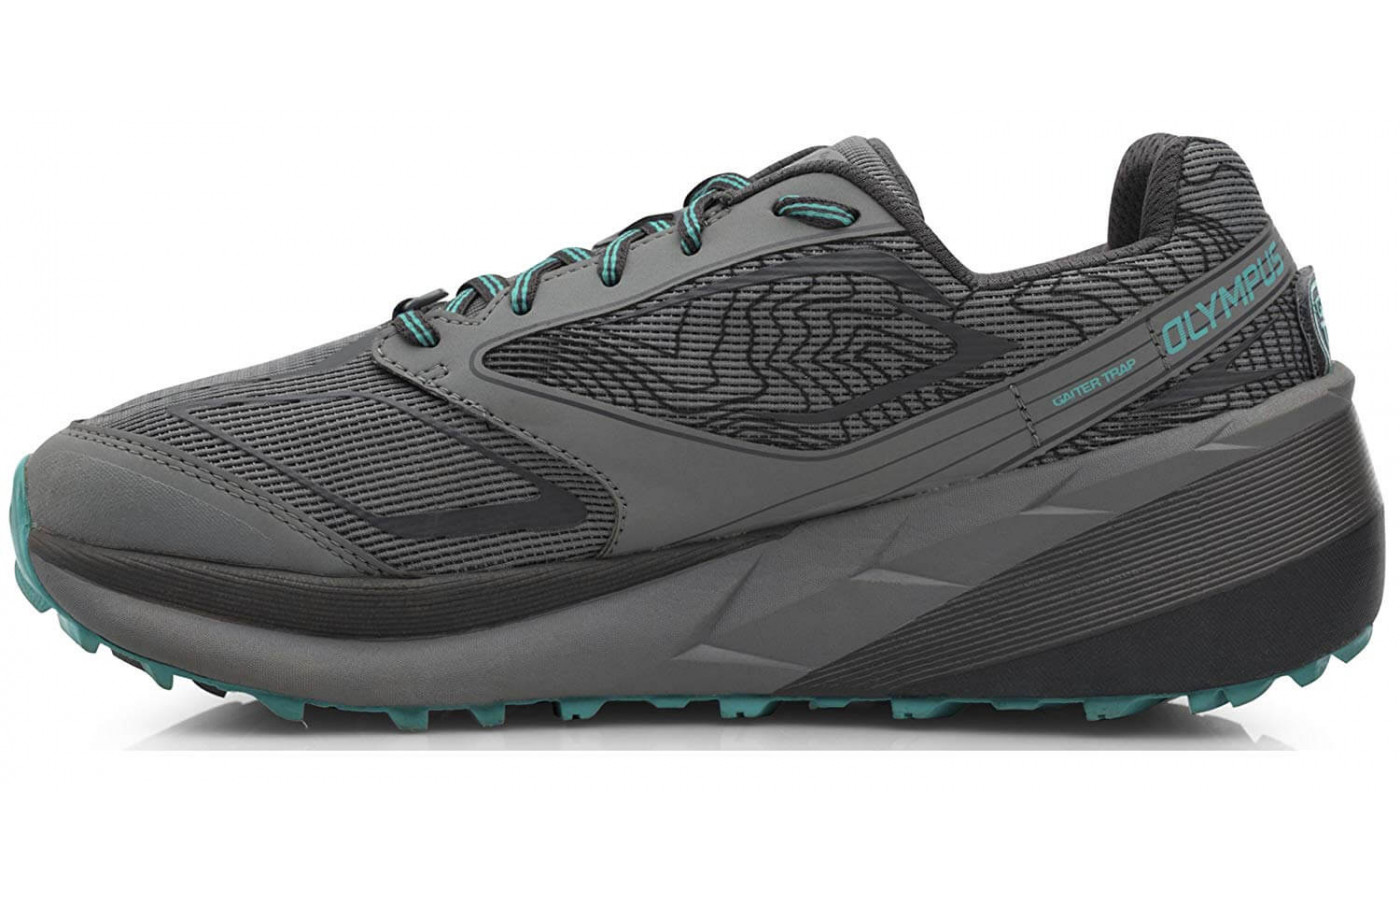 Altra Olympus 3 right to left teal women's